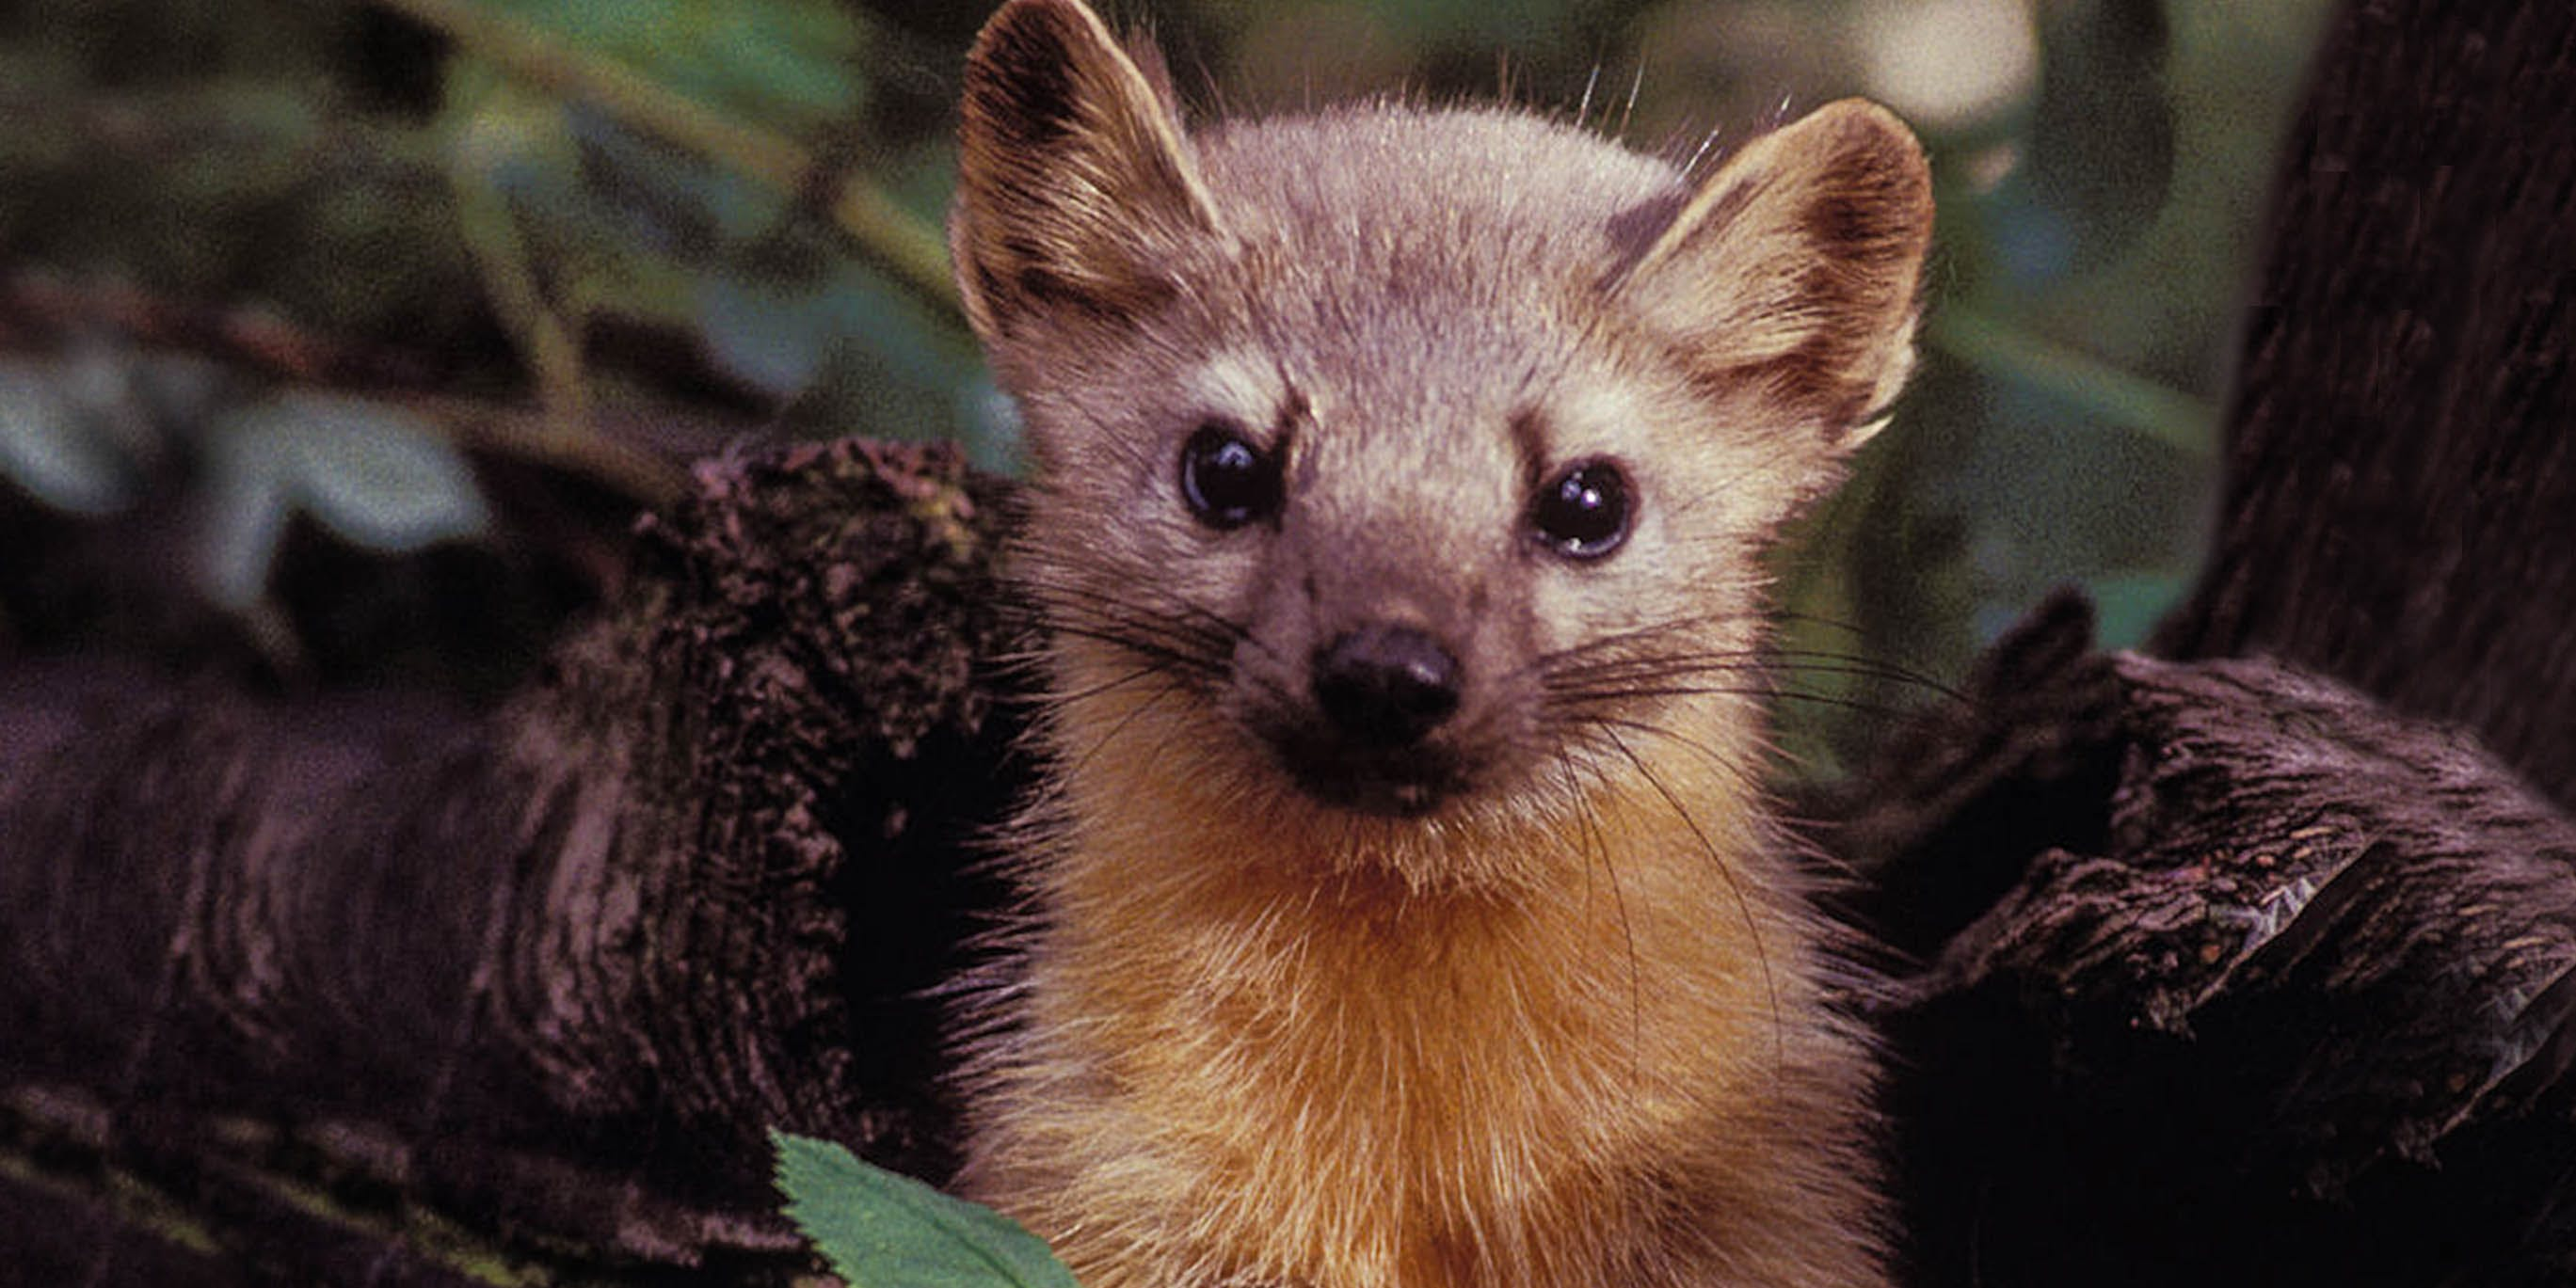 The Pine Marten Becomes The Latest Species Threatened By Irresponsible Weed Farms